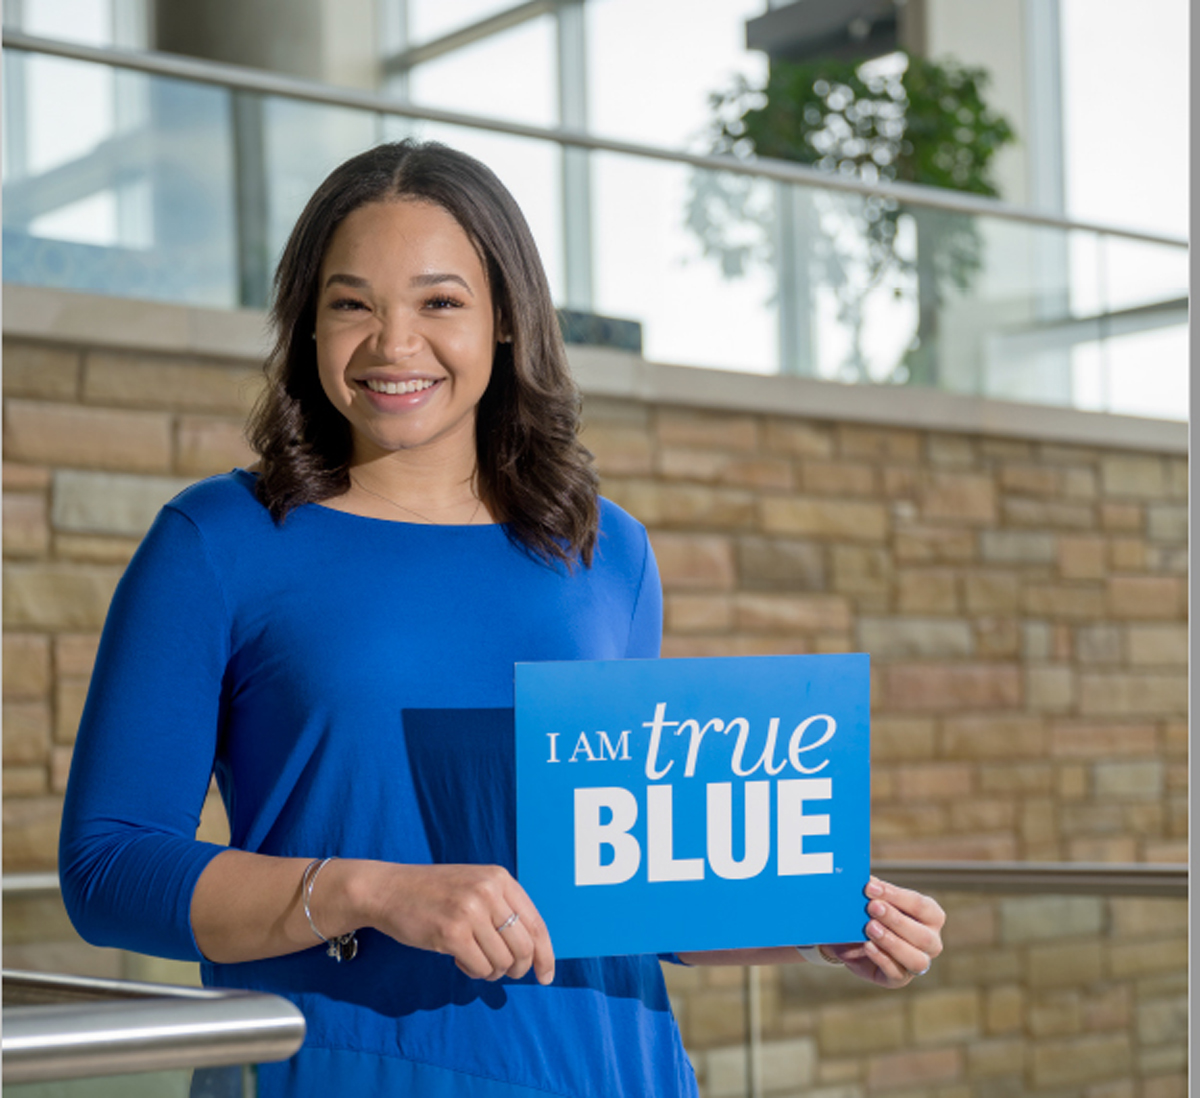 MTSU admissions recruiter Alexandria Johnson will team with fellow recruiter October Henson on the Saturday, Sept. 26, broadcast of the True Blue Preview, helping recruit future students. Johnson is a former MT Lady Raiders basketball player. (Submitted photo)